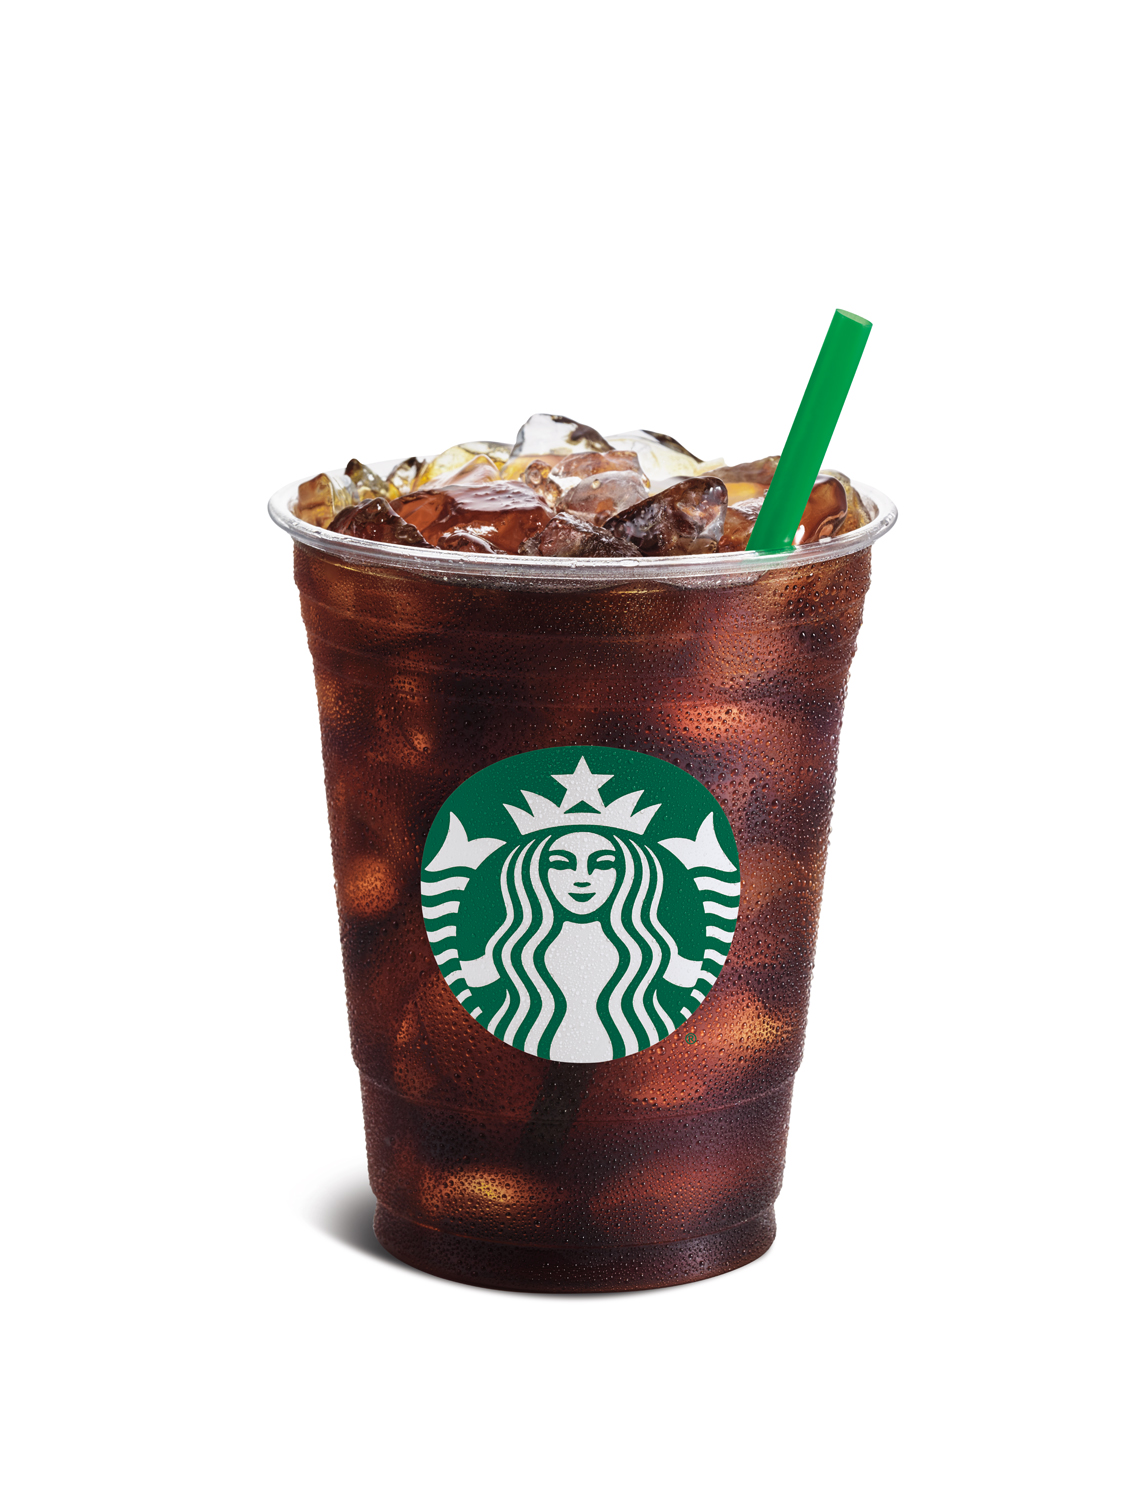 Populaire Starbucks lance son Cold Brew Coffee en France - FASTANDFOOD PR35